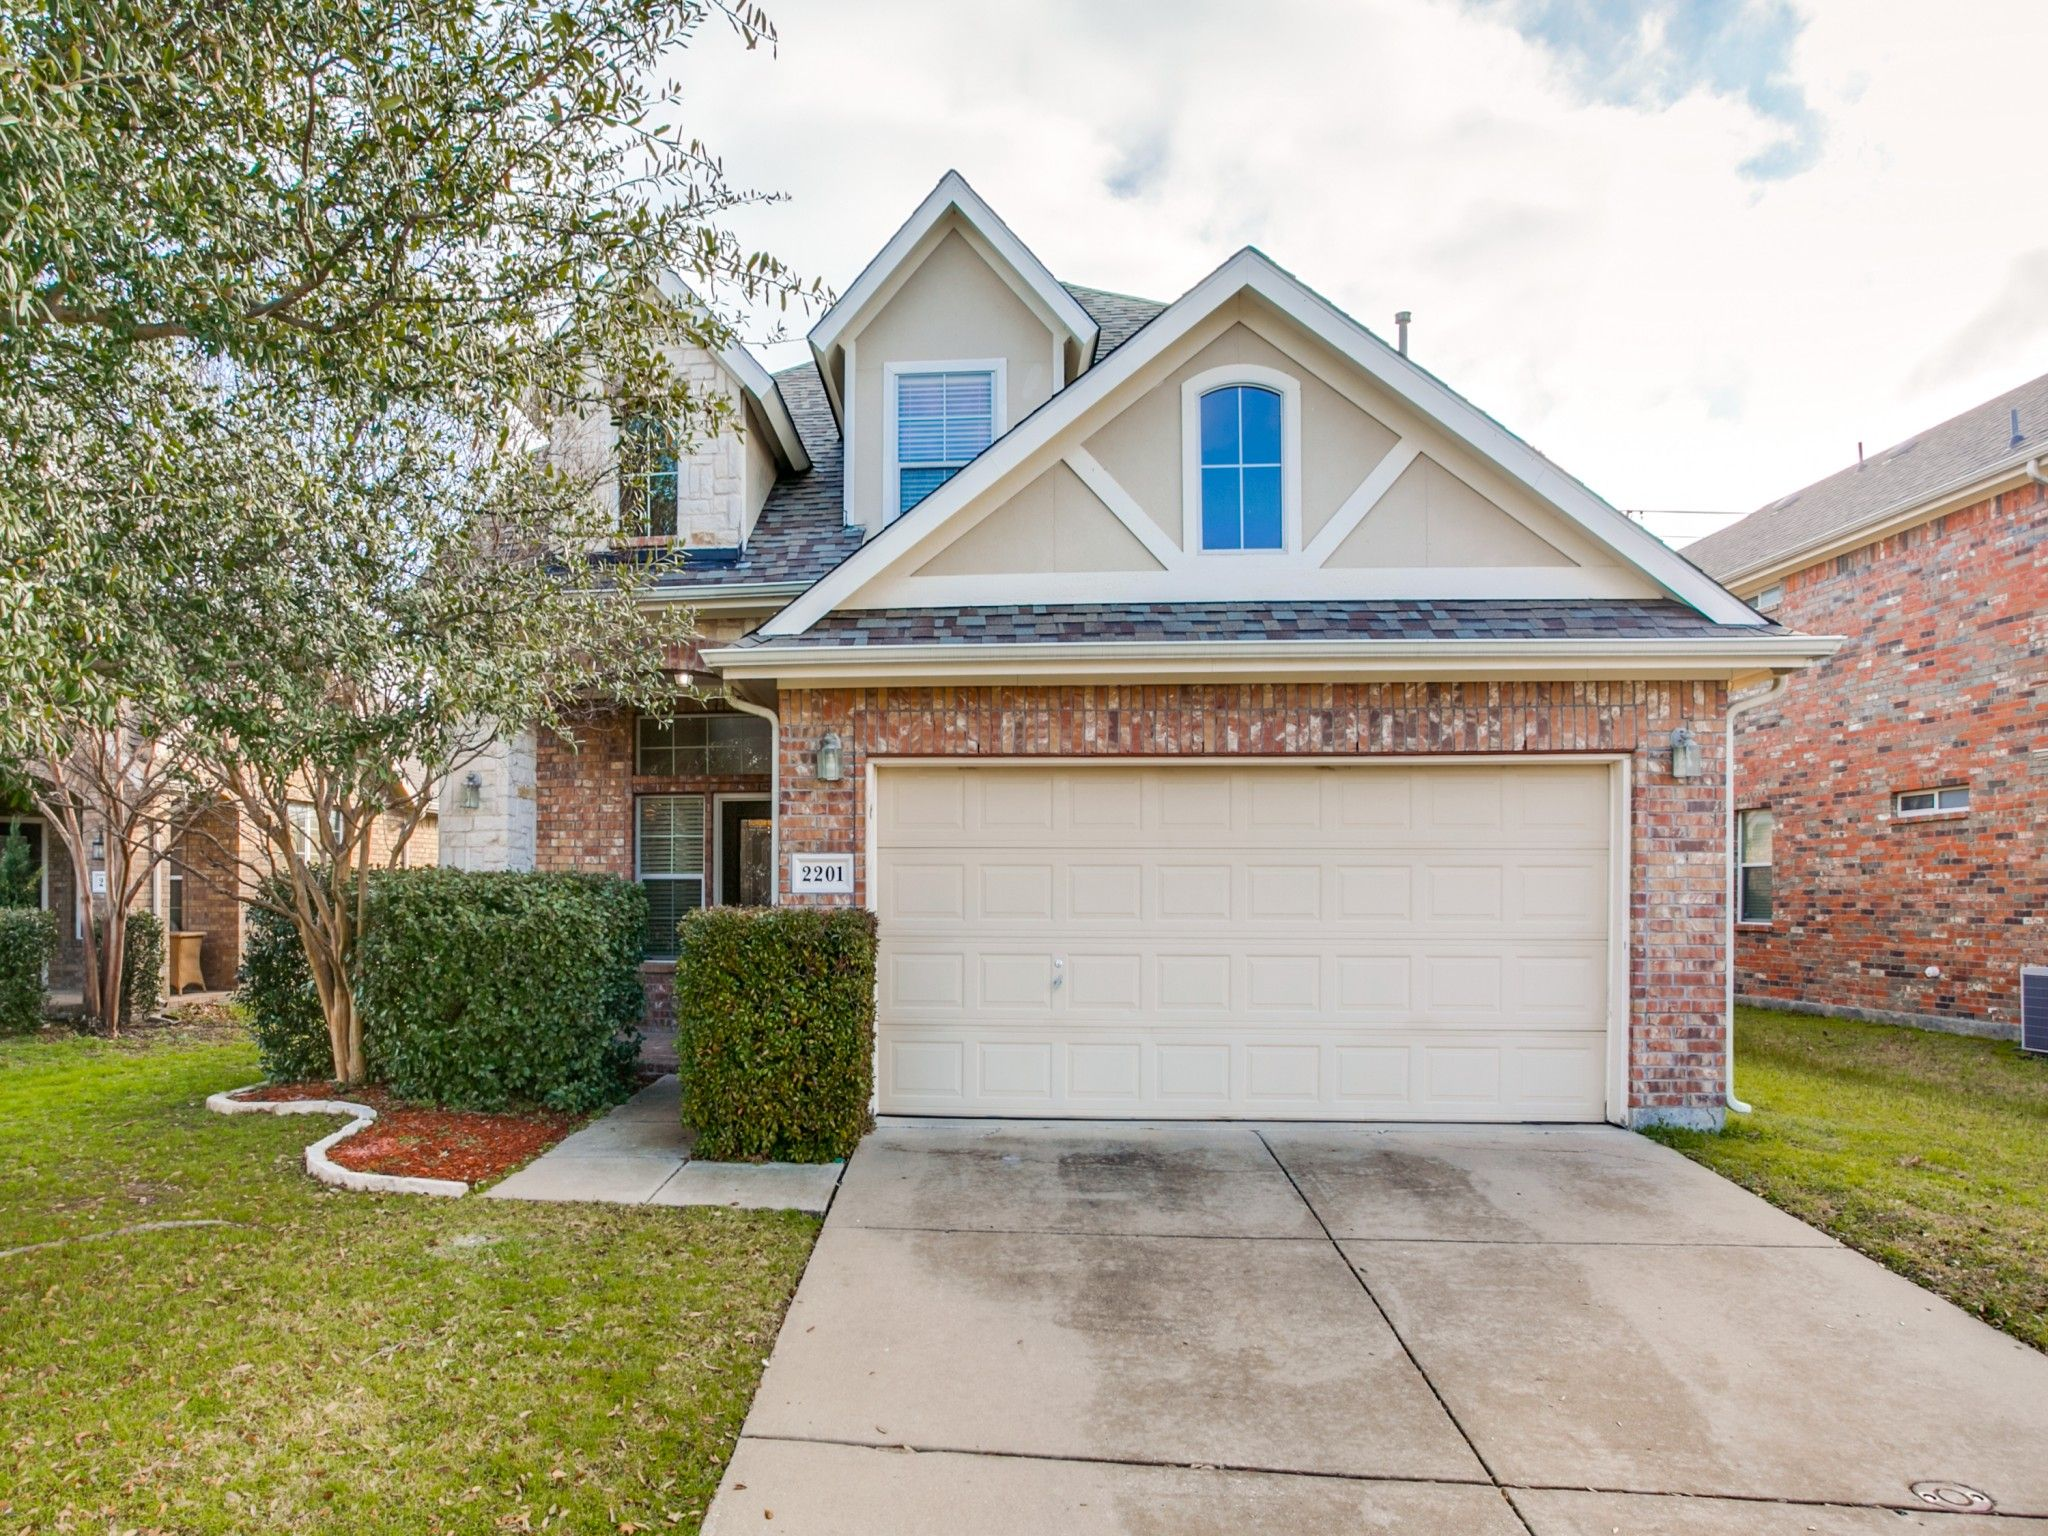 2201 Reston Drive Mckinney Tx 75072 Teamkristan Mckinneytx Mckinneyhomesforsale Mckinneyrealestate Ebbyh Dallas Real Estate Home Thermostat Sell Property